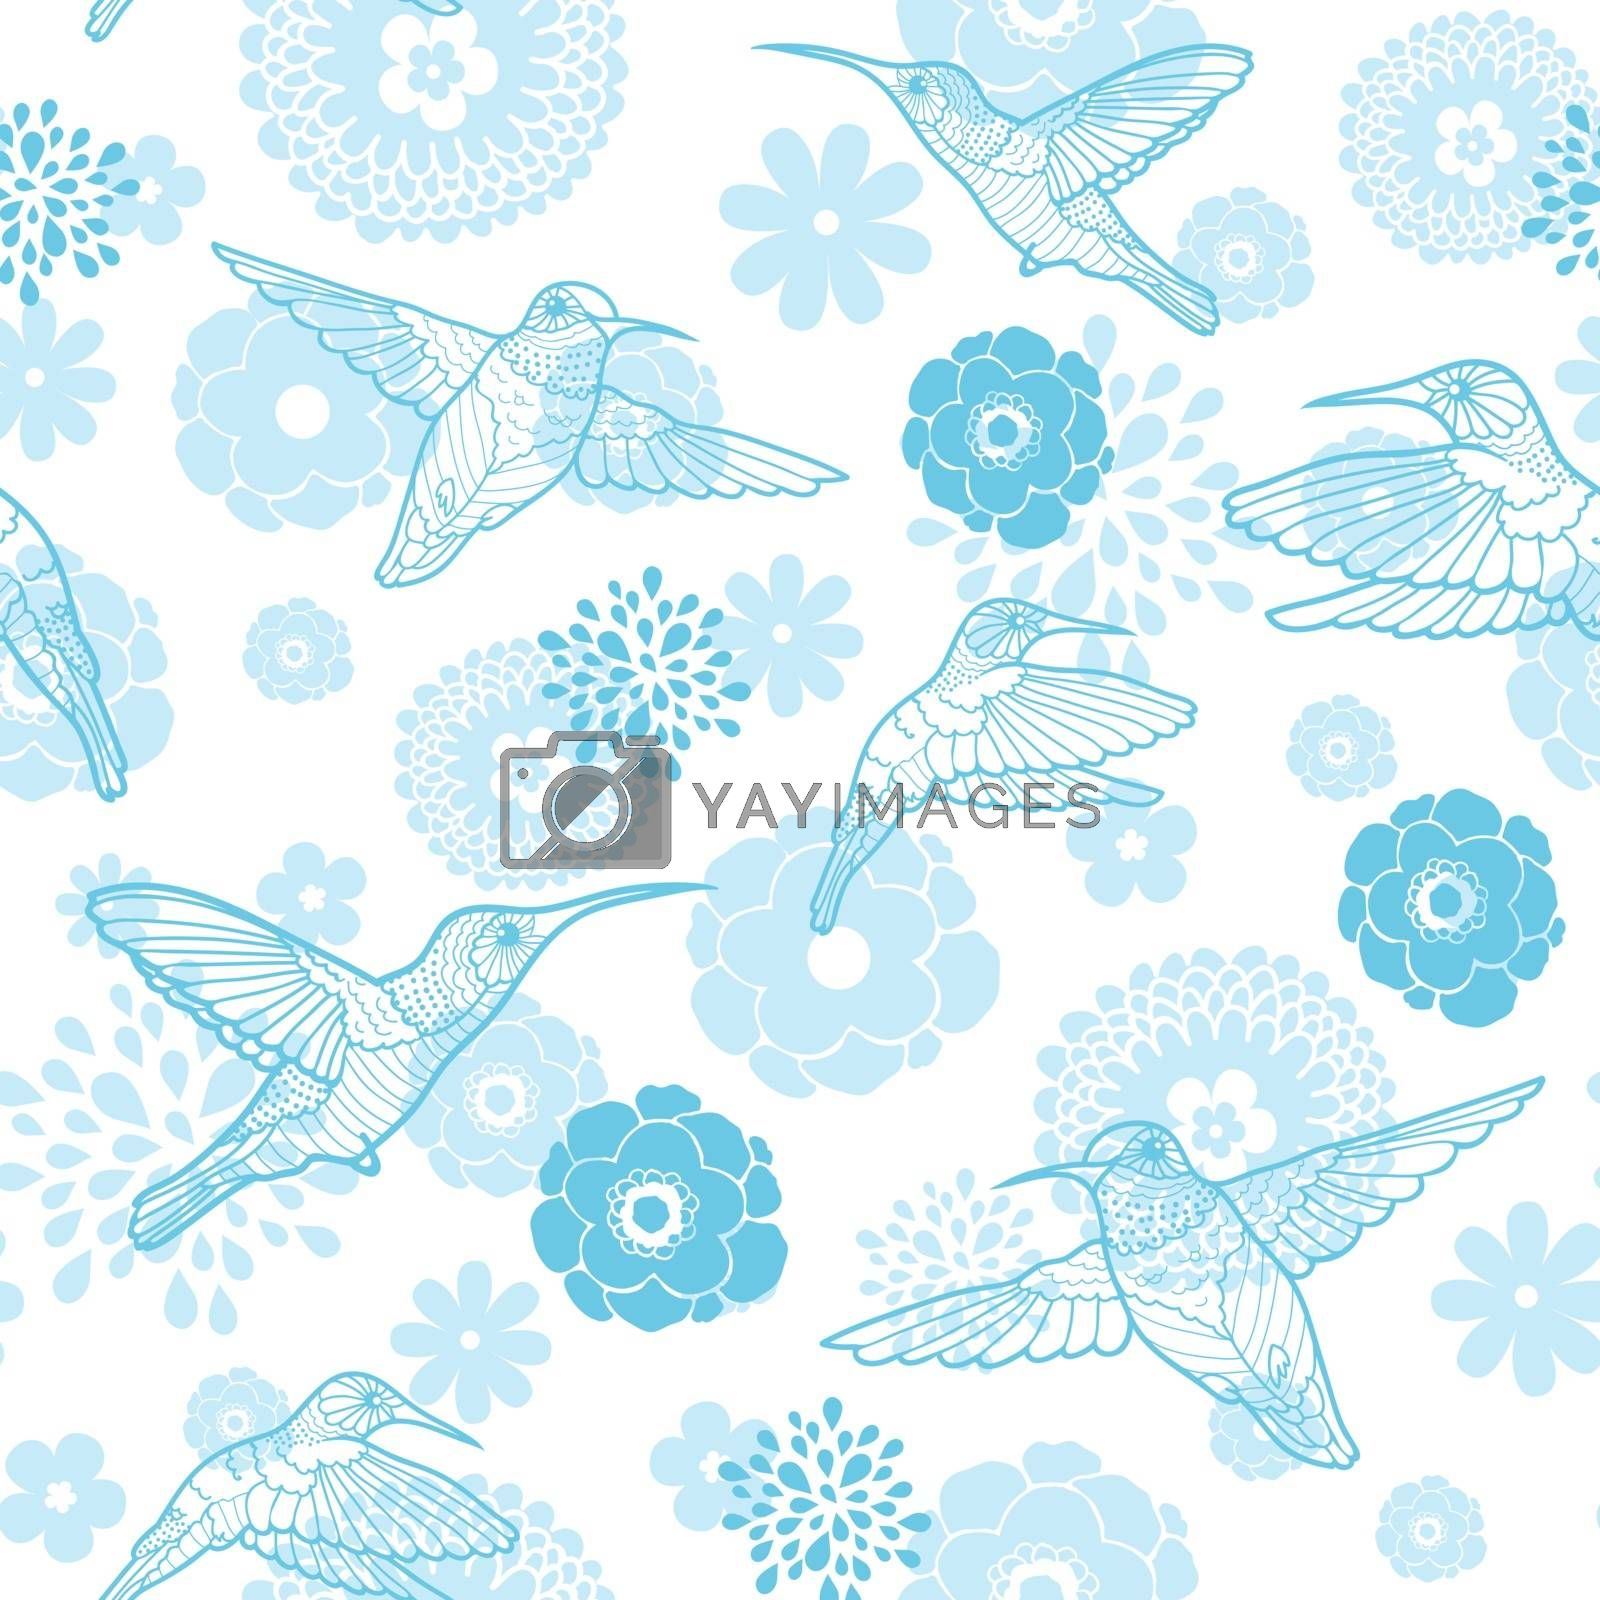 Vector blue hummingbirds and flowers lineart seamless pattern background graphic design